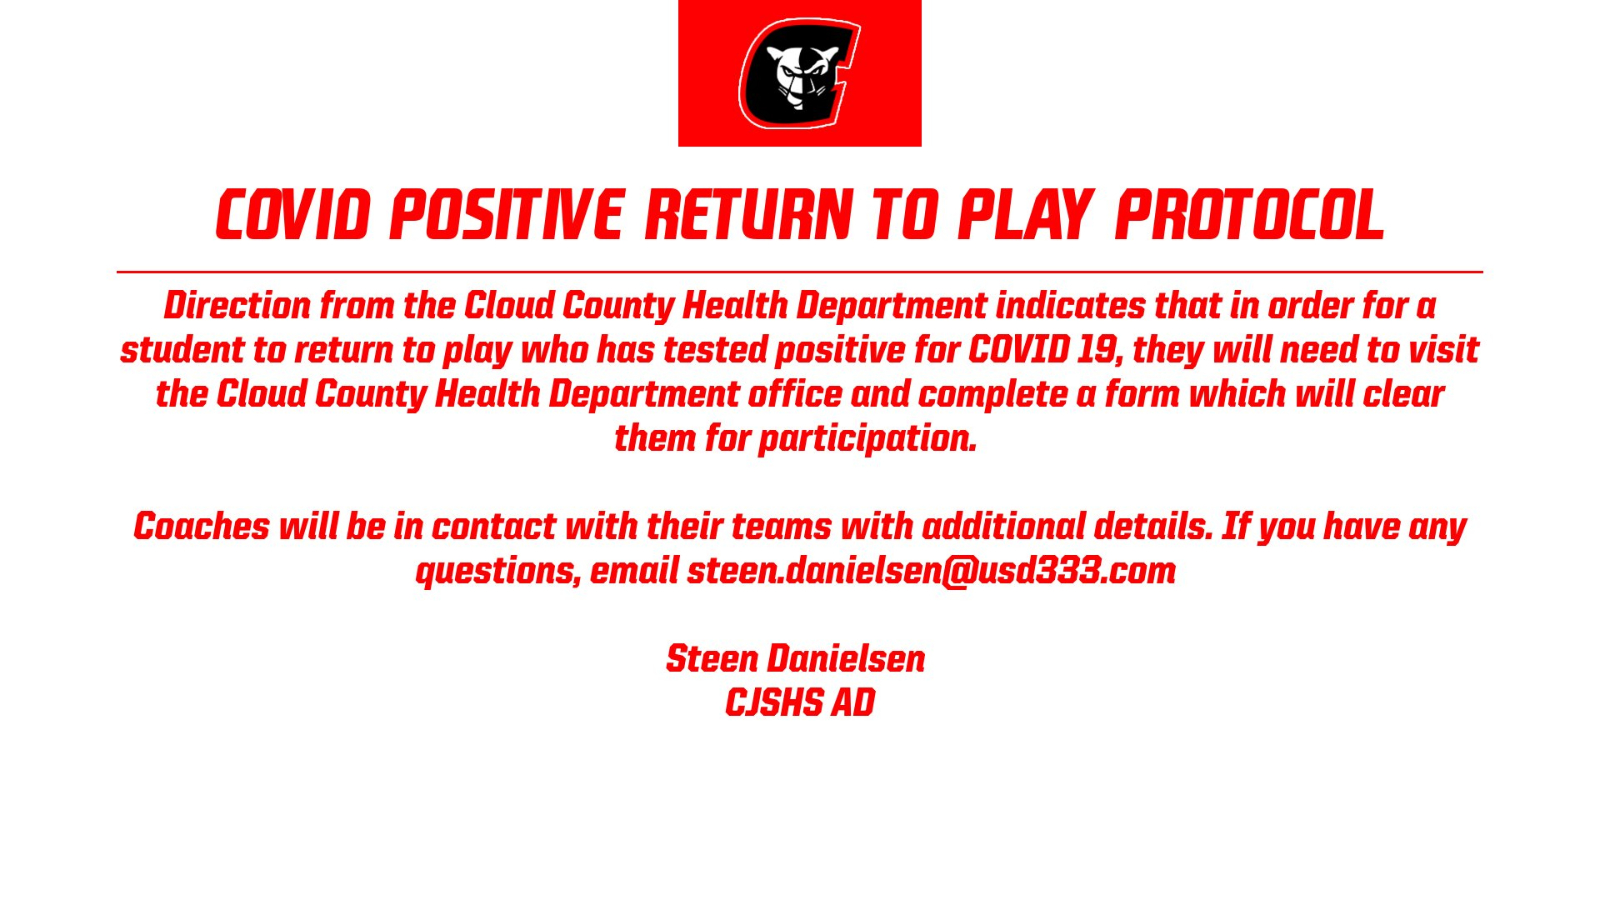 COVID Positive Return To Play Protocol